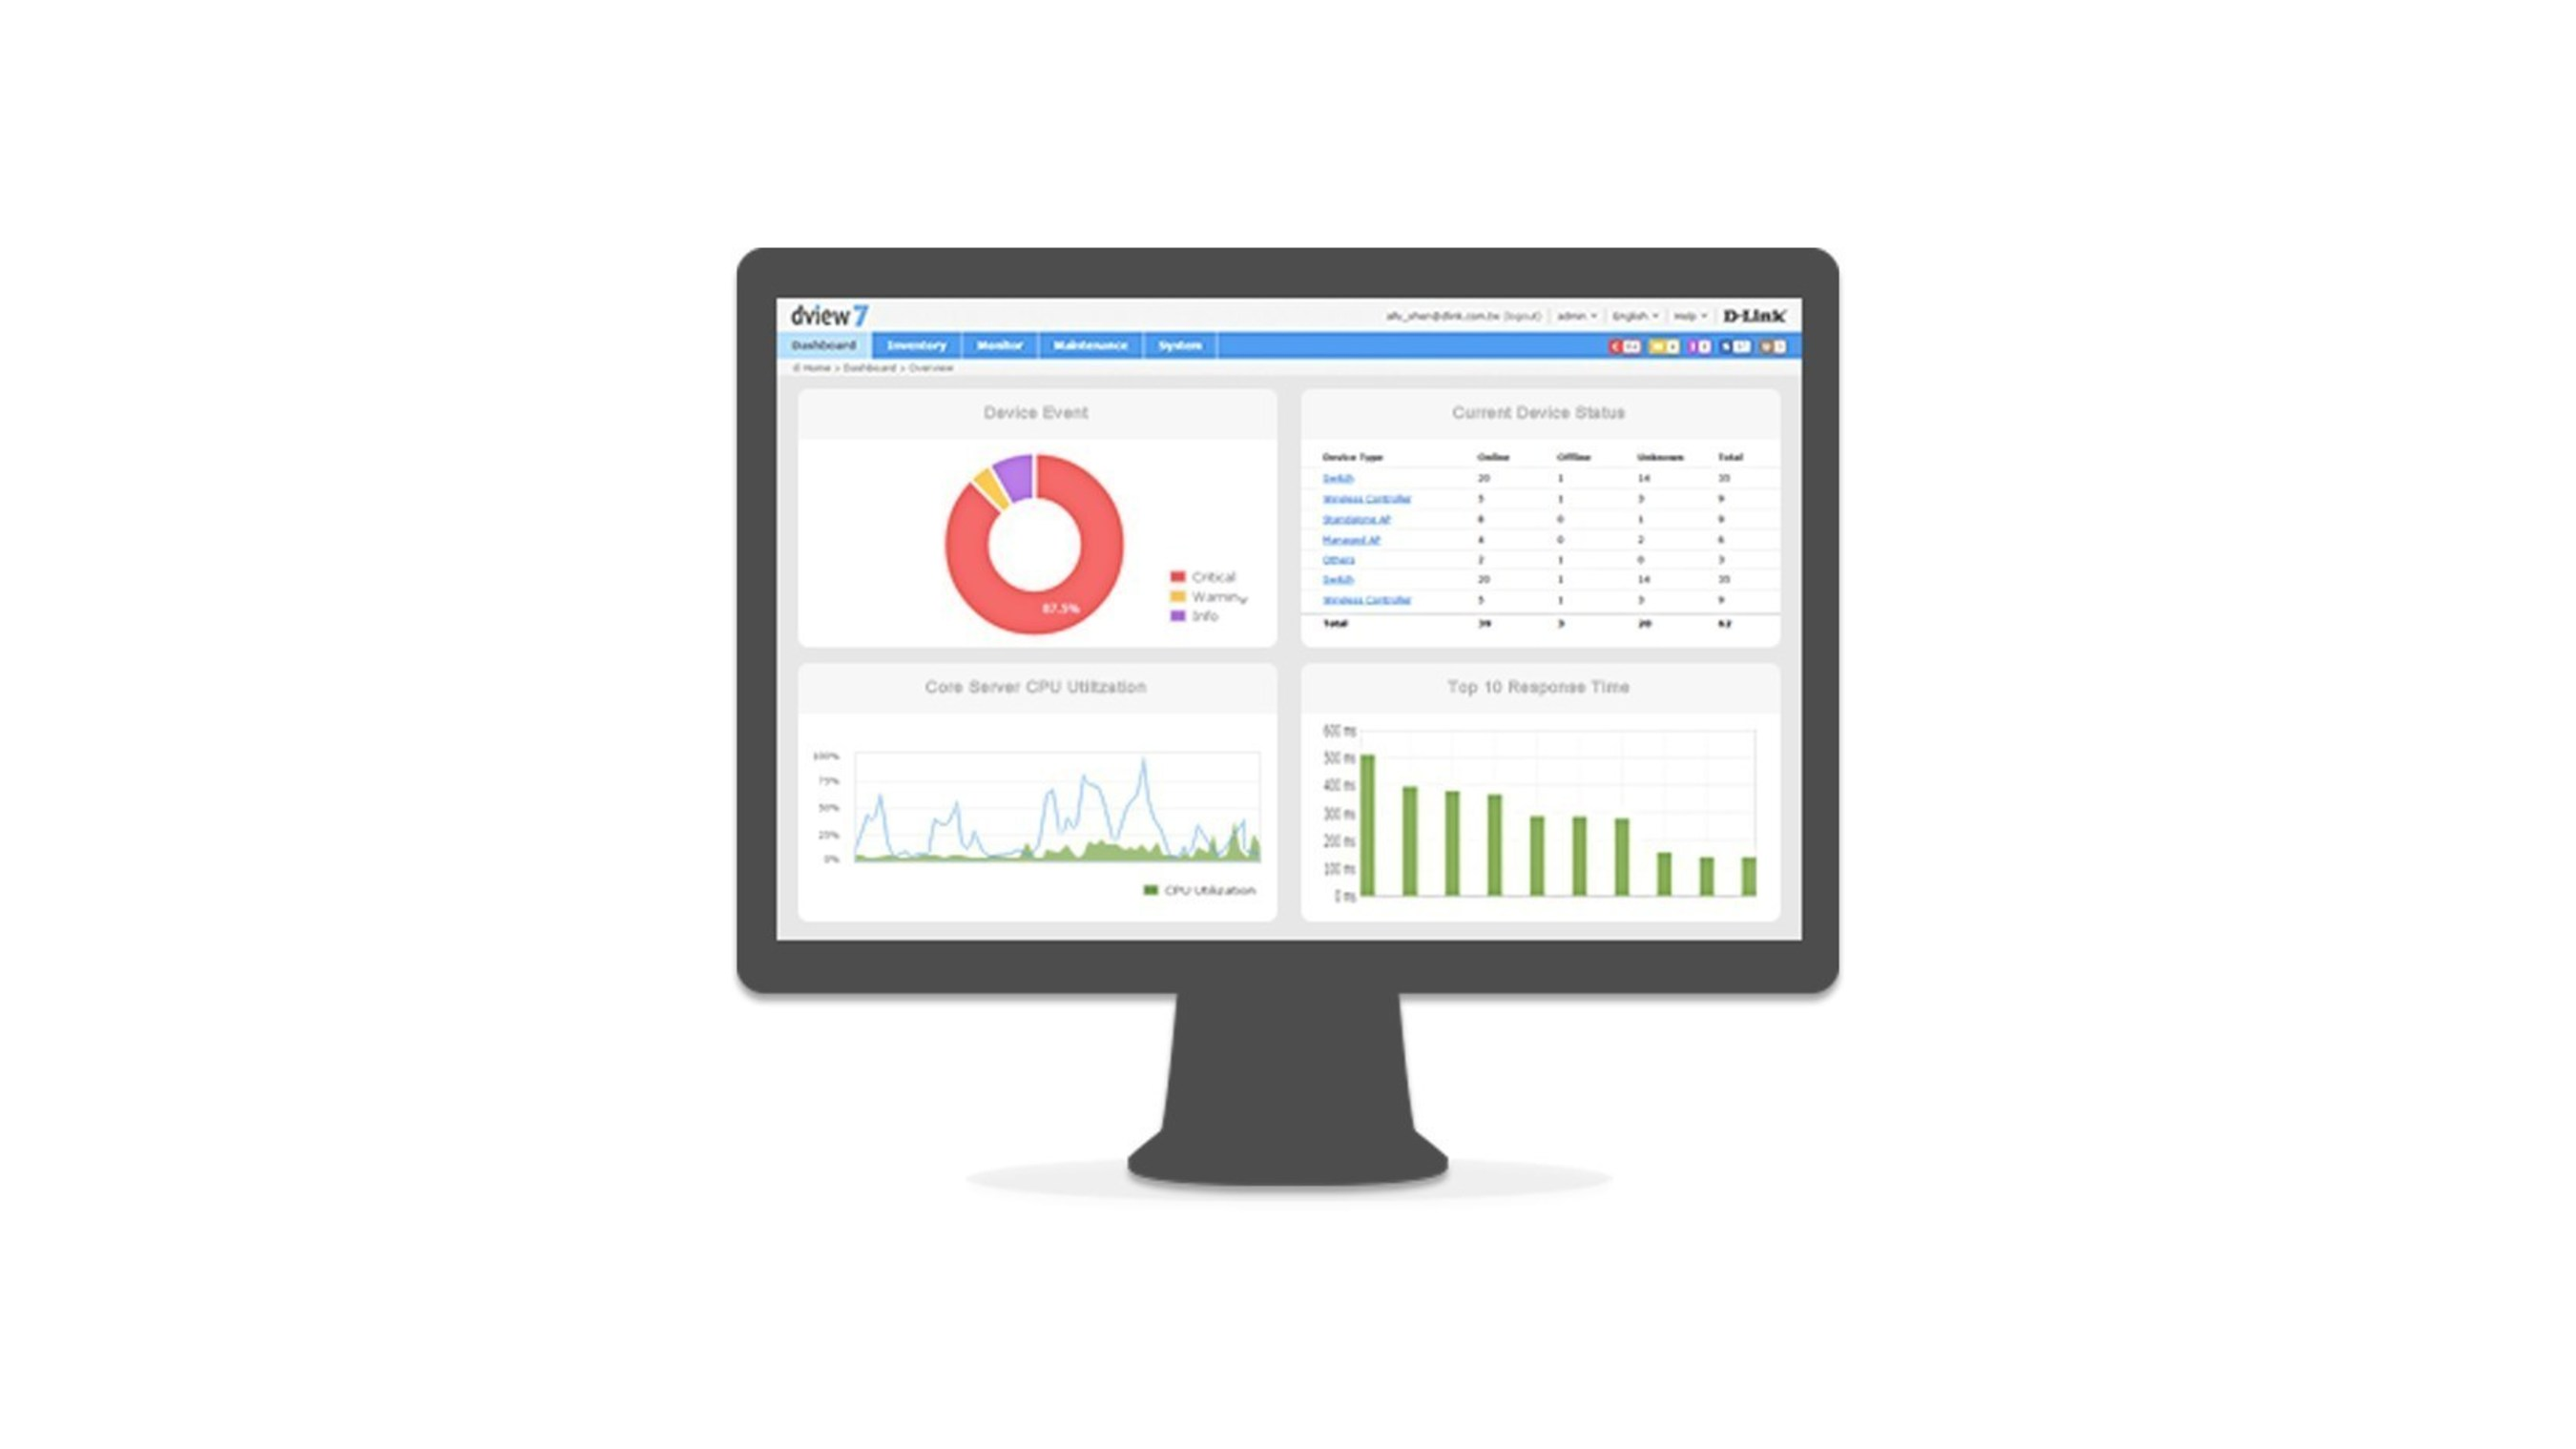 D-View 7 is a web-based NMS designed to effectively manage device monitoring, configuration and troubleshooting.